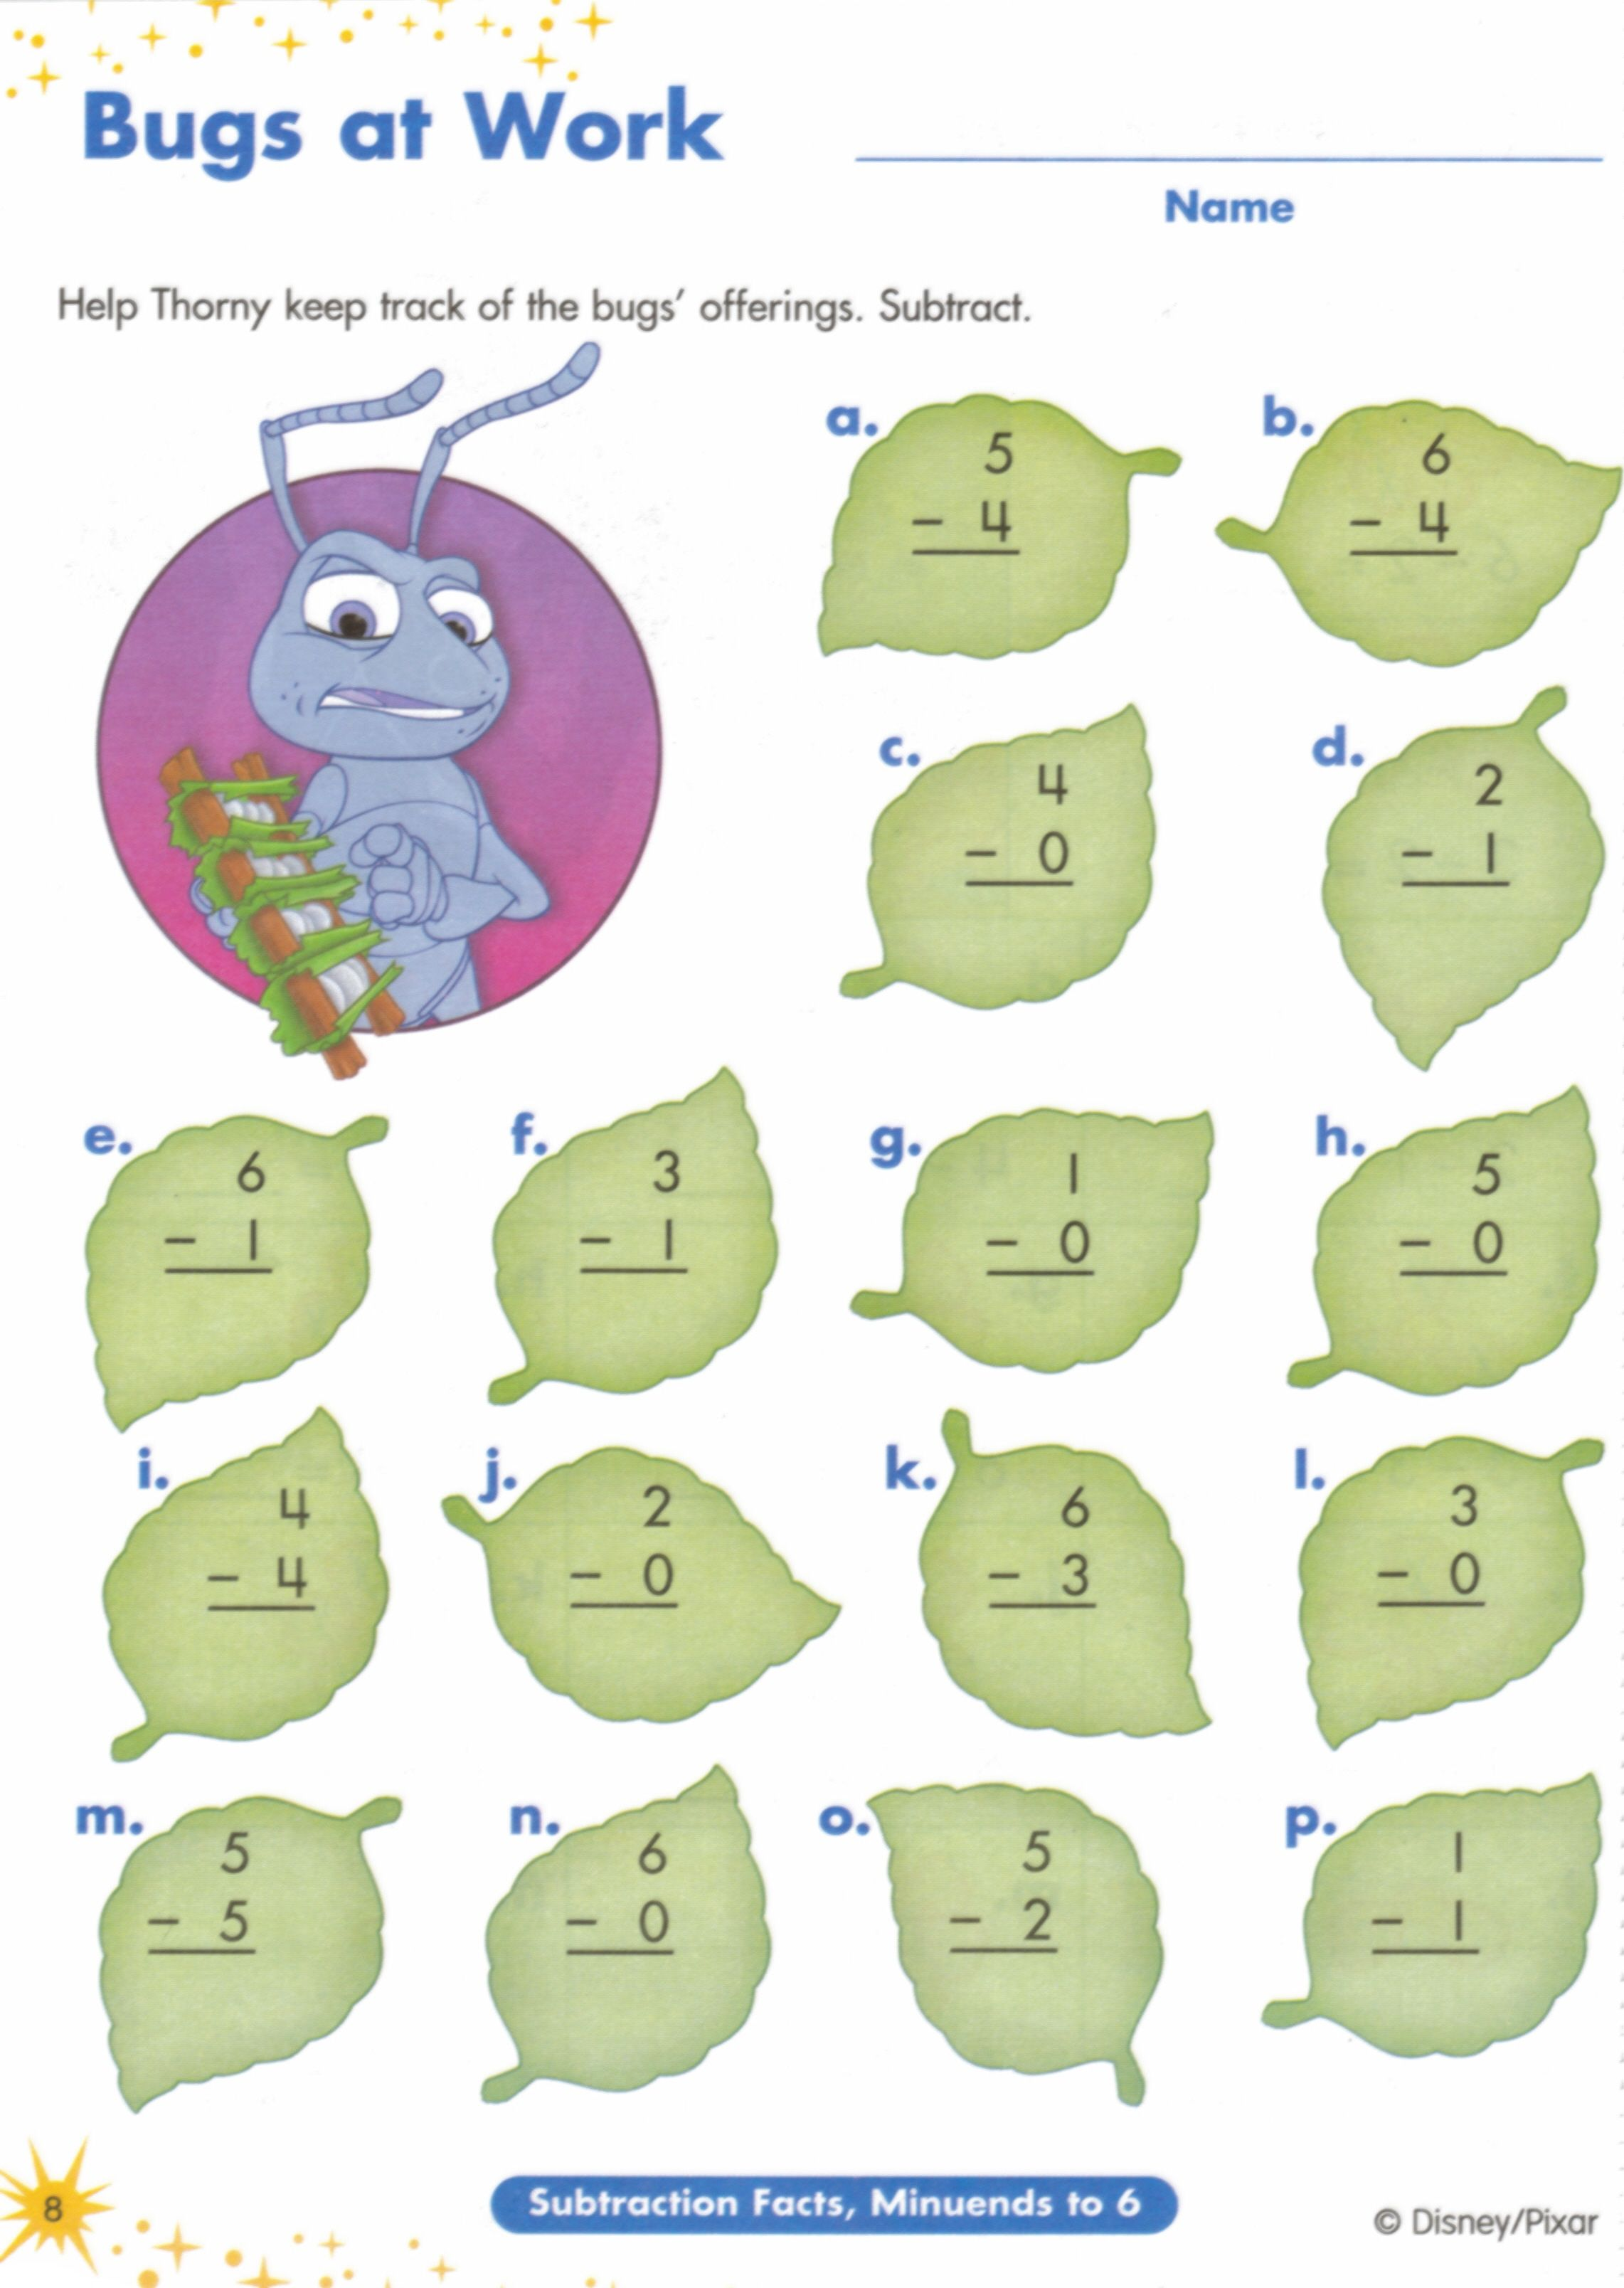 Aldiablosus  Sweet  Images About Worksheets On Pinterest  Fun Facts For Kids  With Fetching  Images About Worksheets On Pinterest  Fun Facts For Kids Earth Day Worksheets And Jungles With Lovely Note Name Worksheets Also Arithmetic Reasoning Worksheets In Addition Multiplication Of Integers Worksheet And Density And Buoyancy Worksheet As Well As Circle Equation Worksheet Additionally Ffa Creed Worksheet From Pinterestcom With Aldiablosus  Fetching  Images About Worksheets On Pinterest  Fun Facts For Kids  With Lovely  Images About Worksheets On Pinterest  Fun Facts For Kids Earth Day Worksheets And Jungles And Sweet Note Name Worksheets Also Arithmetic Reasoning Worksheets In Addition Multiplication Of Integers Worksheet From Pinterestcom